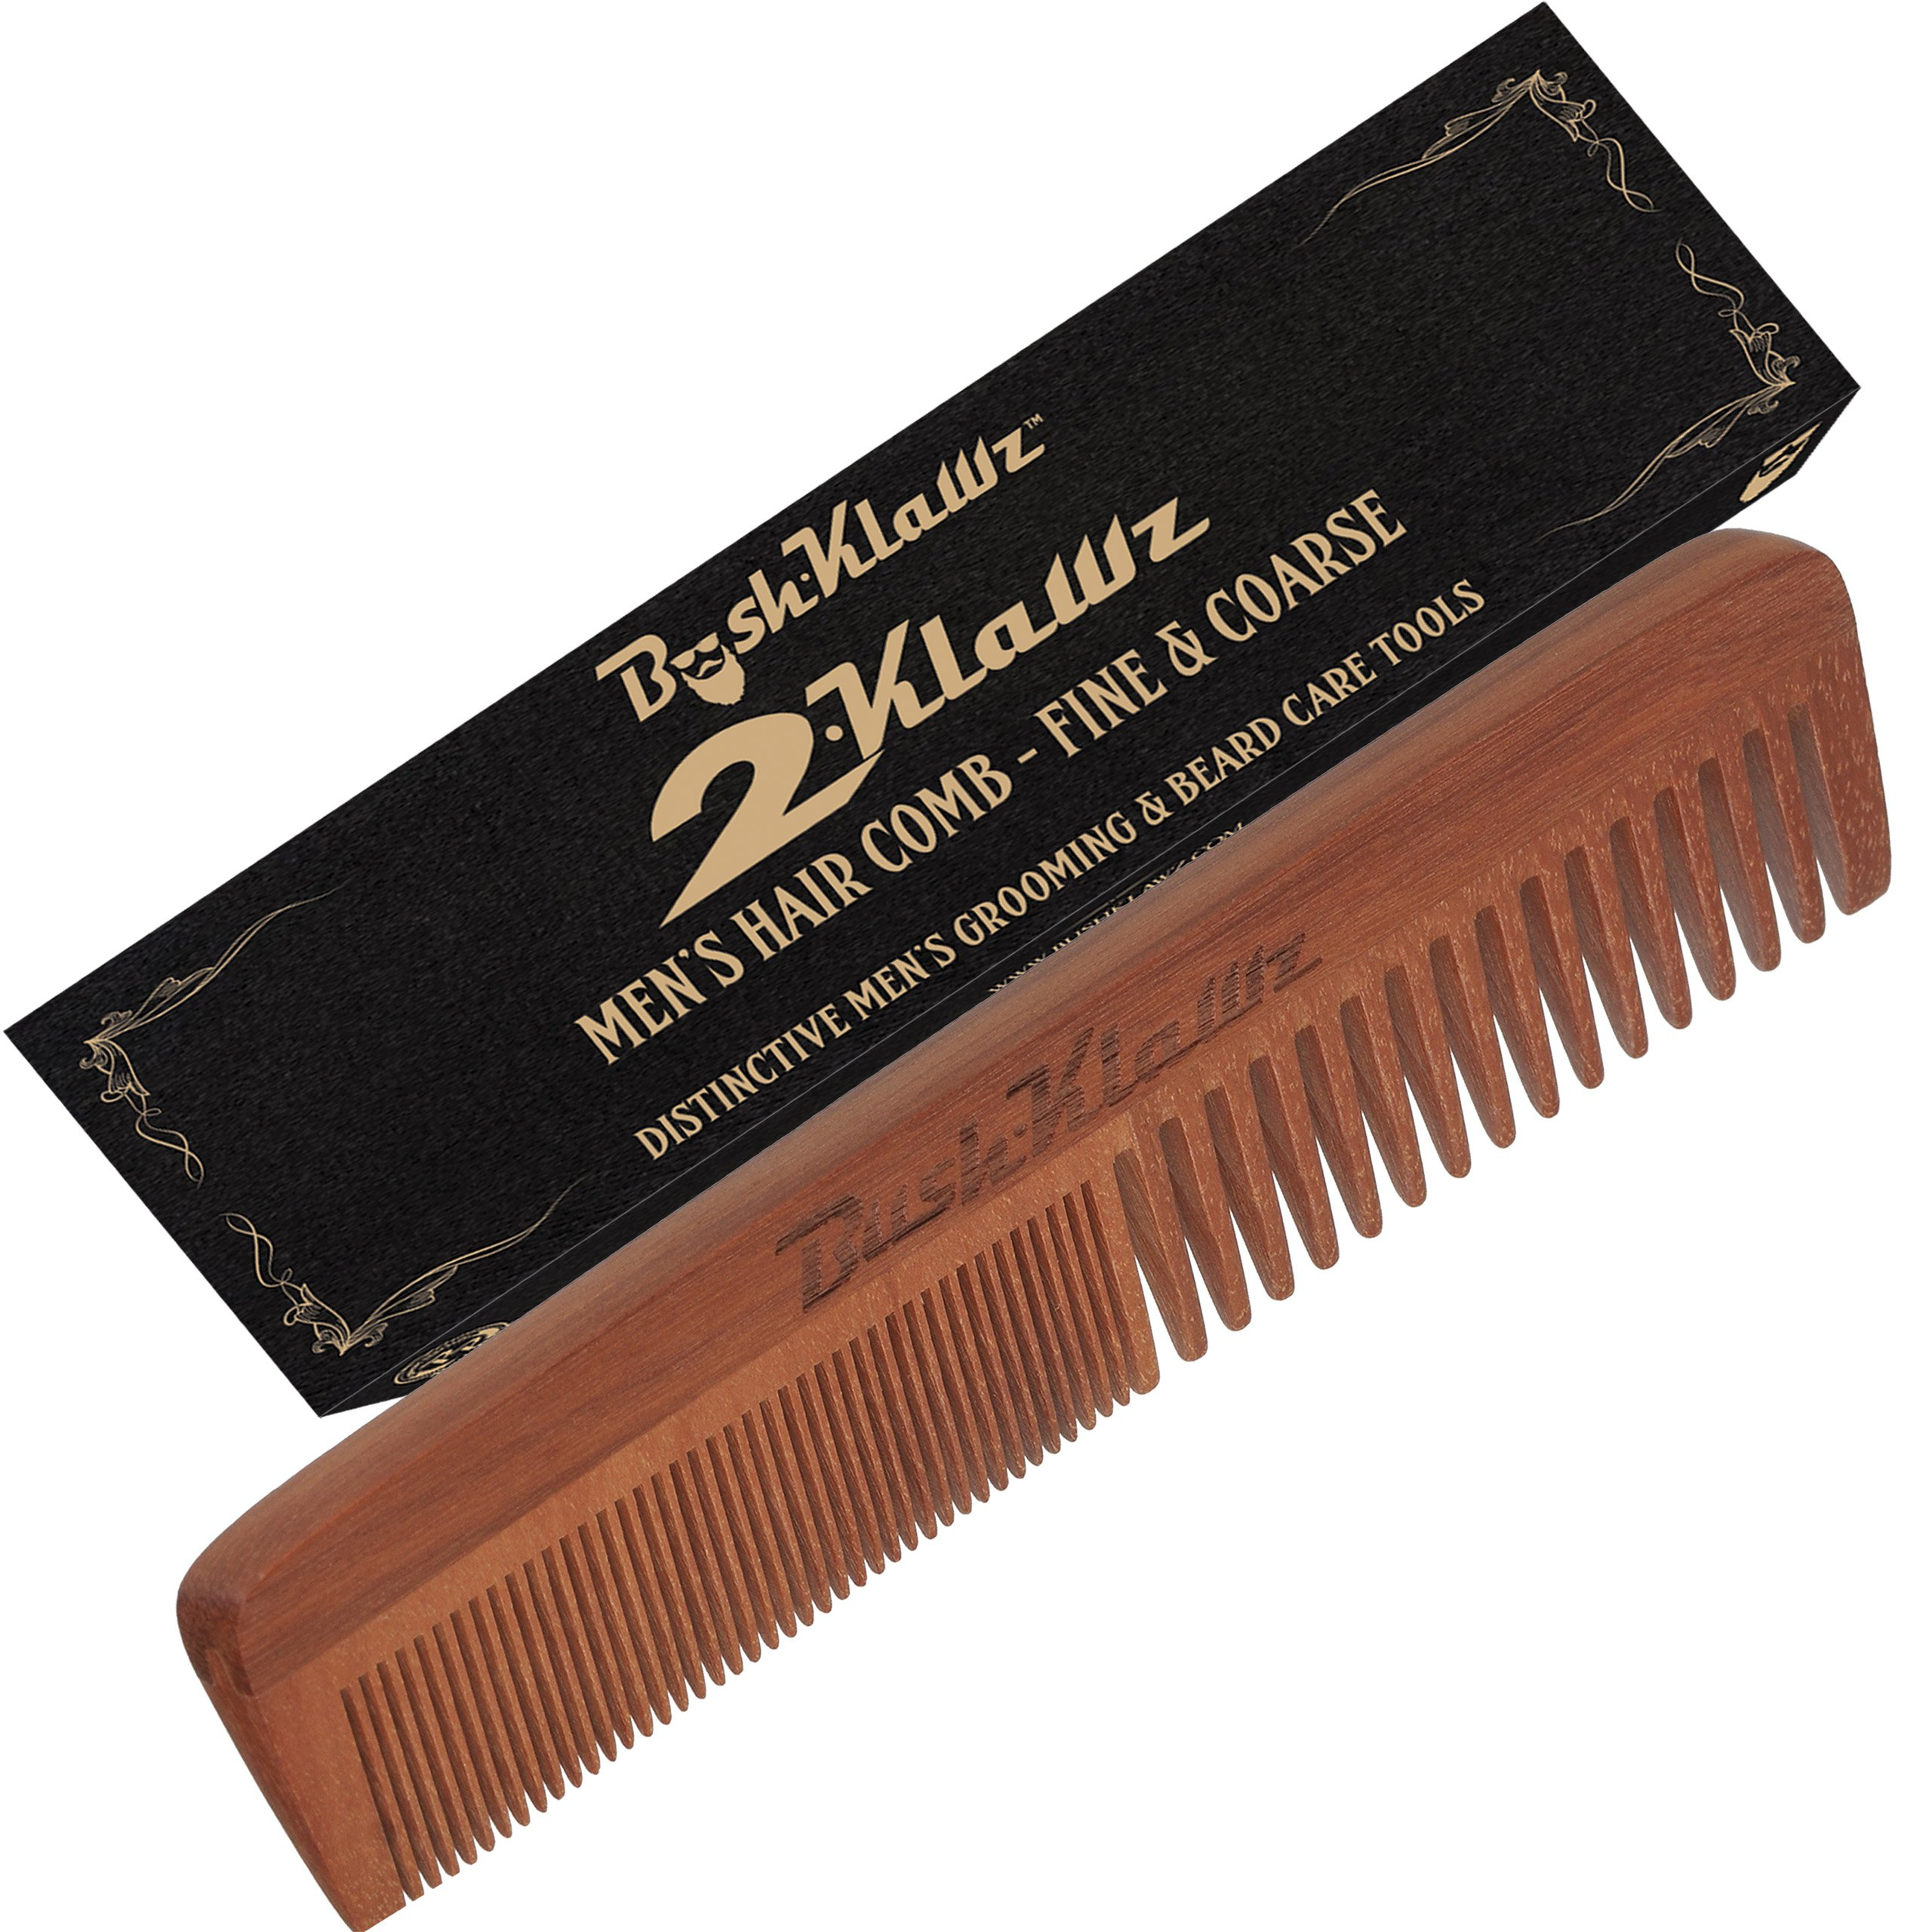 2Klawz Hair Comb for Men - Hair and Beard Comb with Wide and Fine Teeth Full Size 7'' Combination Comb - Best Man Comb Grooming Gift Special Gift For Mens comb Clark Kent Comb by BushKlawz